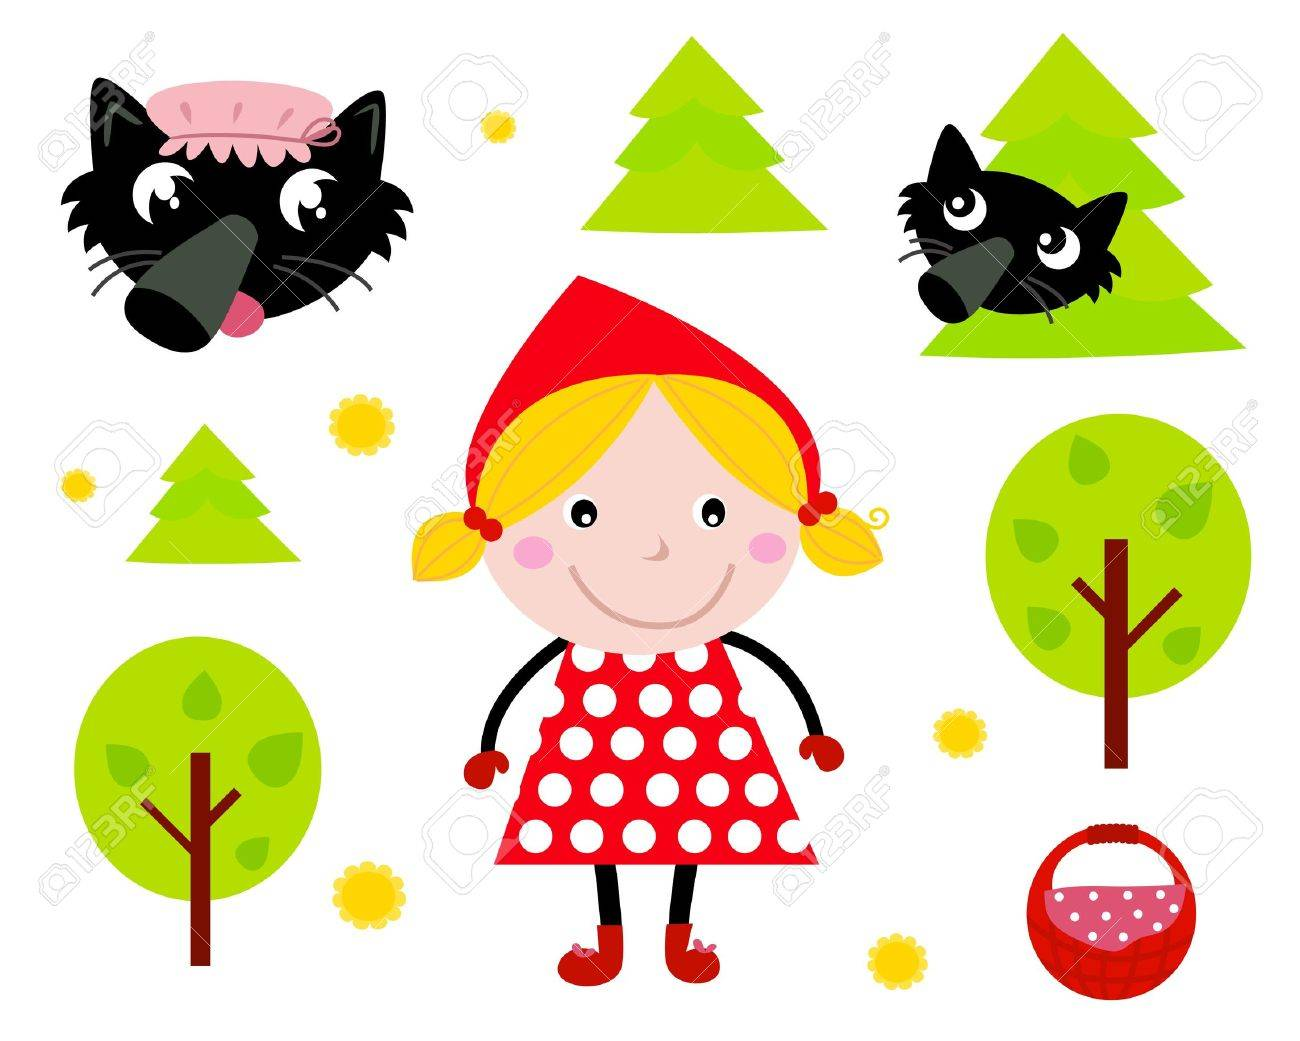 Red riding hood and wolf tale icons isolated on white. Vector cartoon illustration. Stock Vector - 9884251